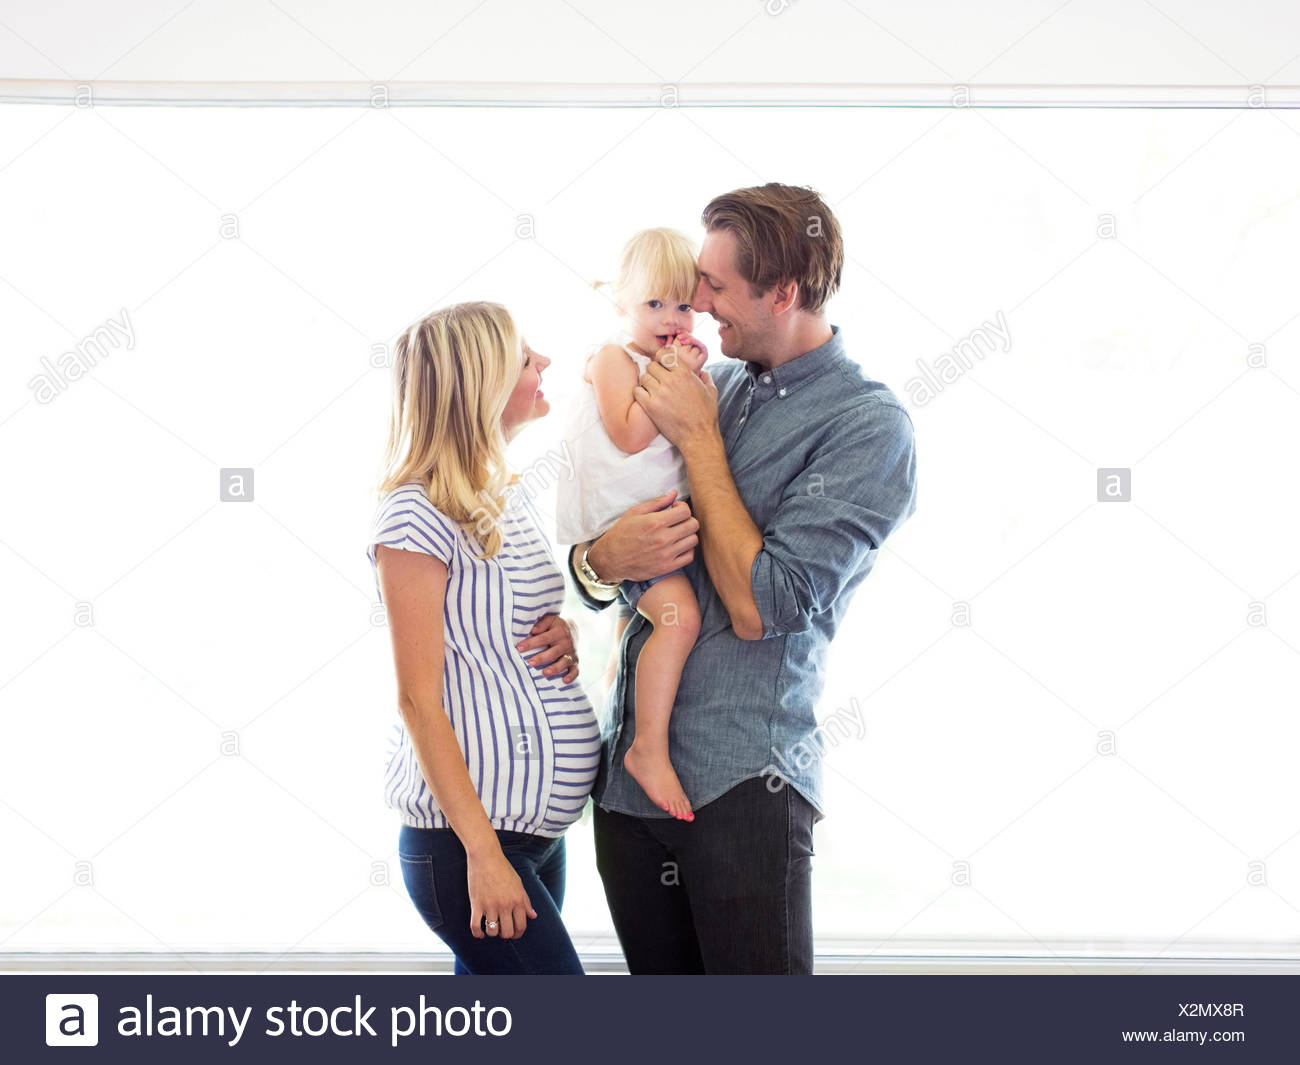 Family portrait of parents with daughter (2-3) - Stock Image